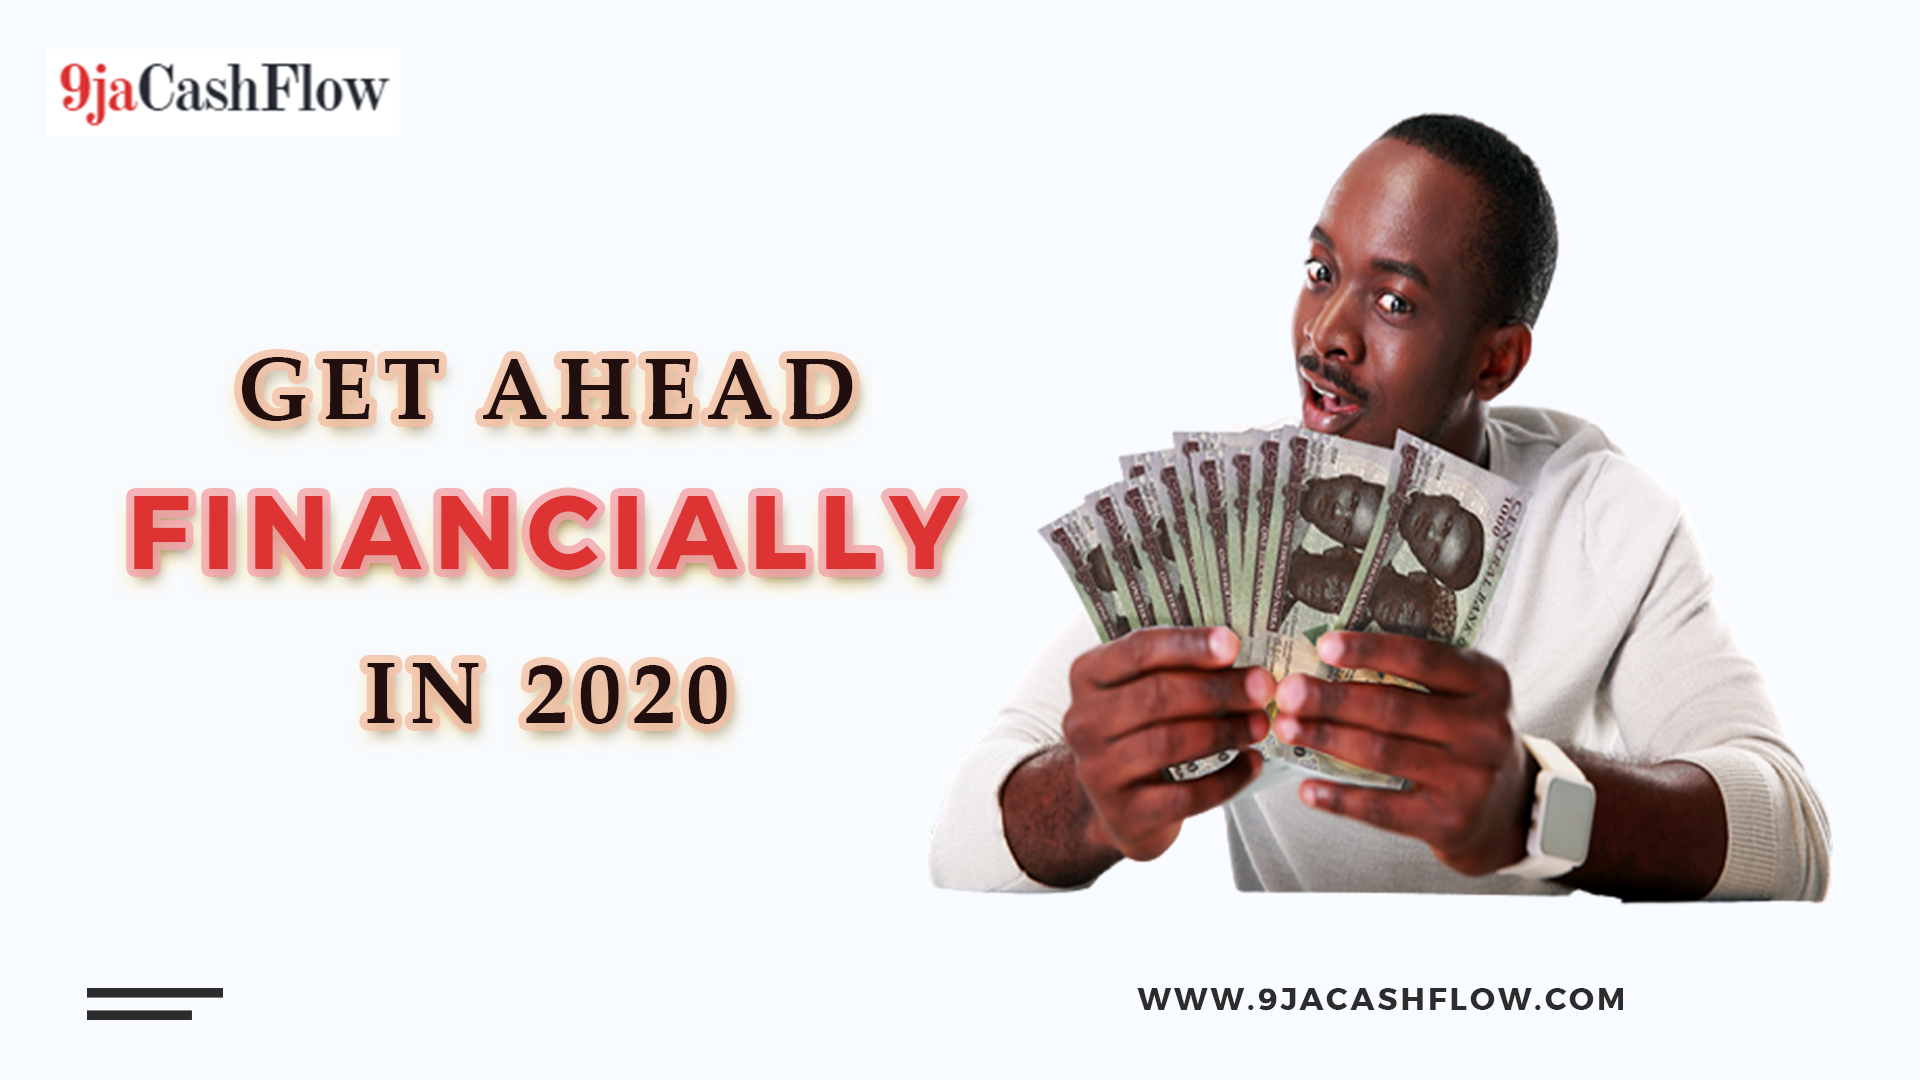 Get ahead financialy